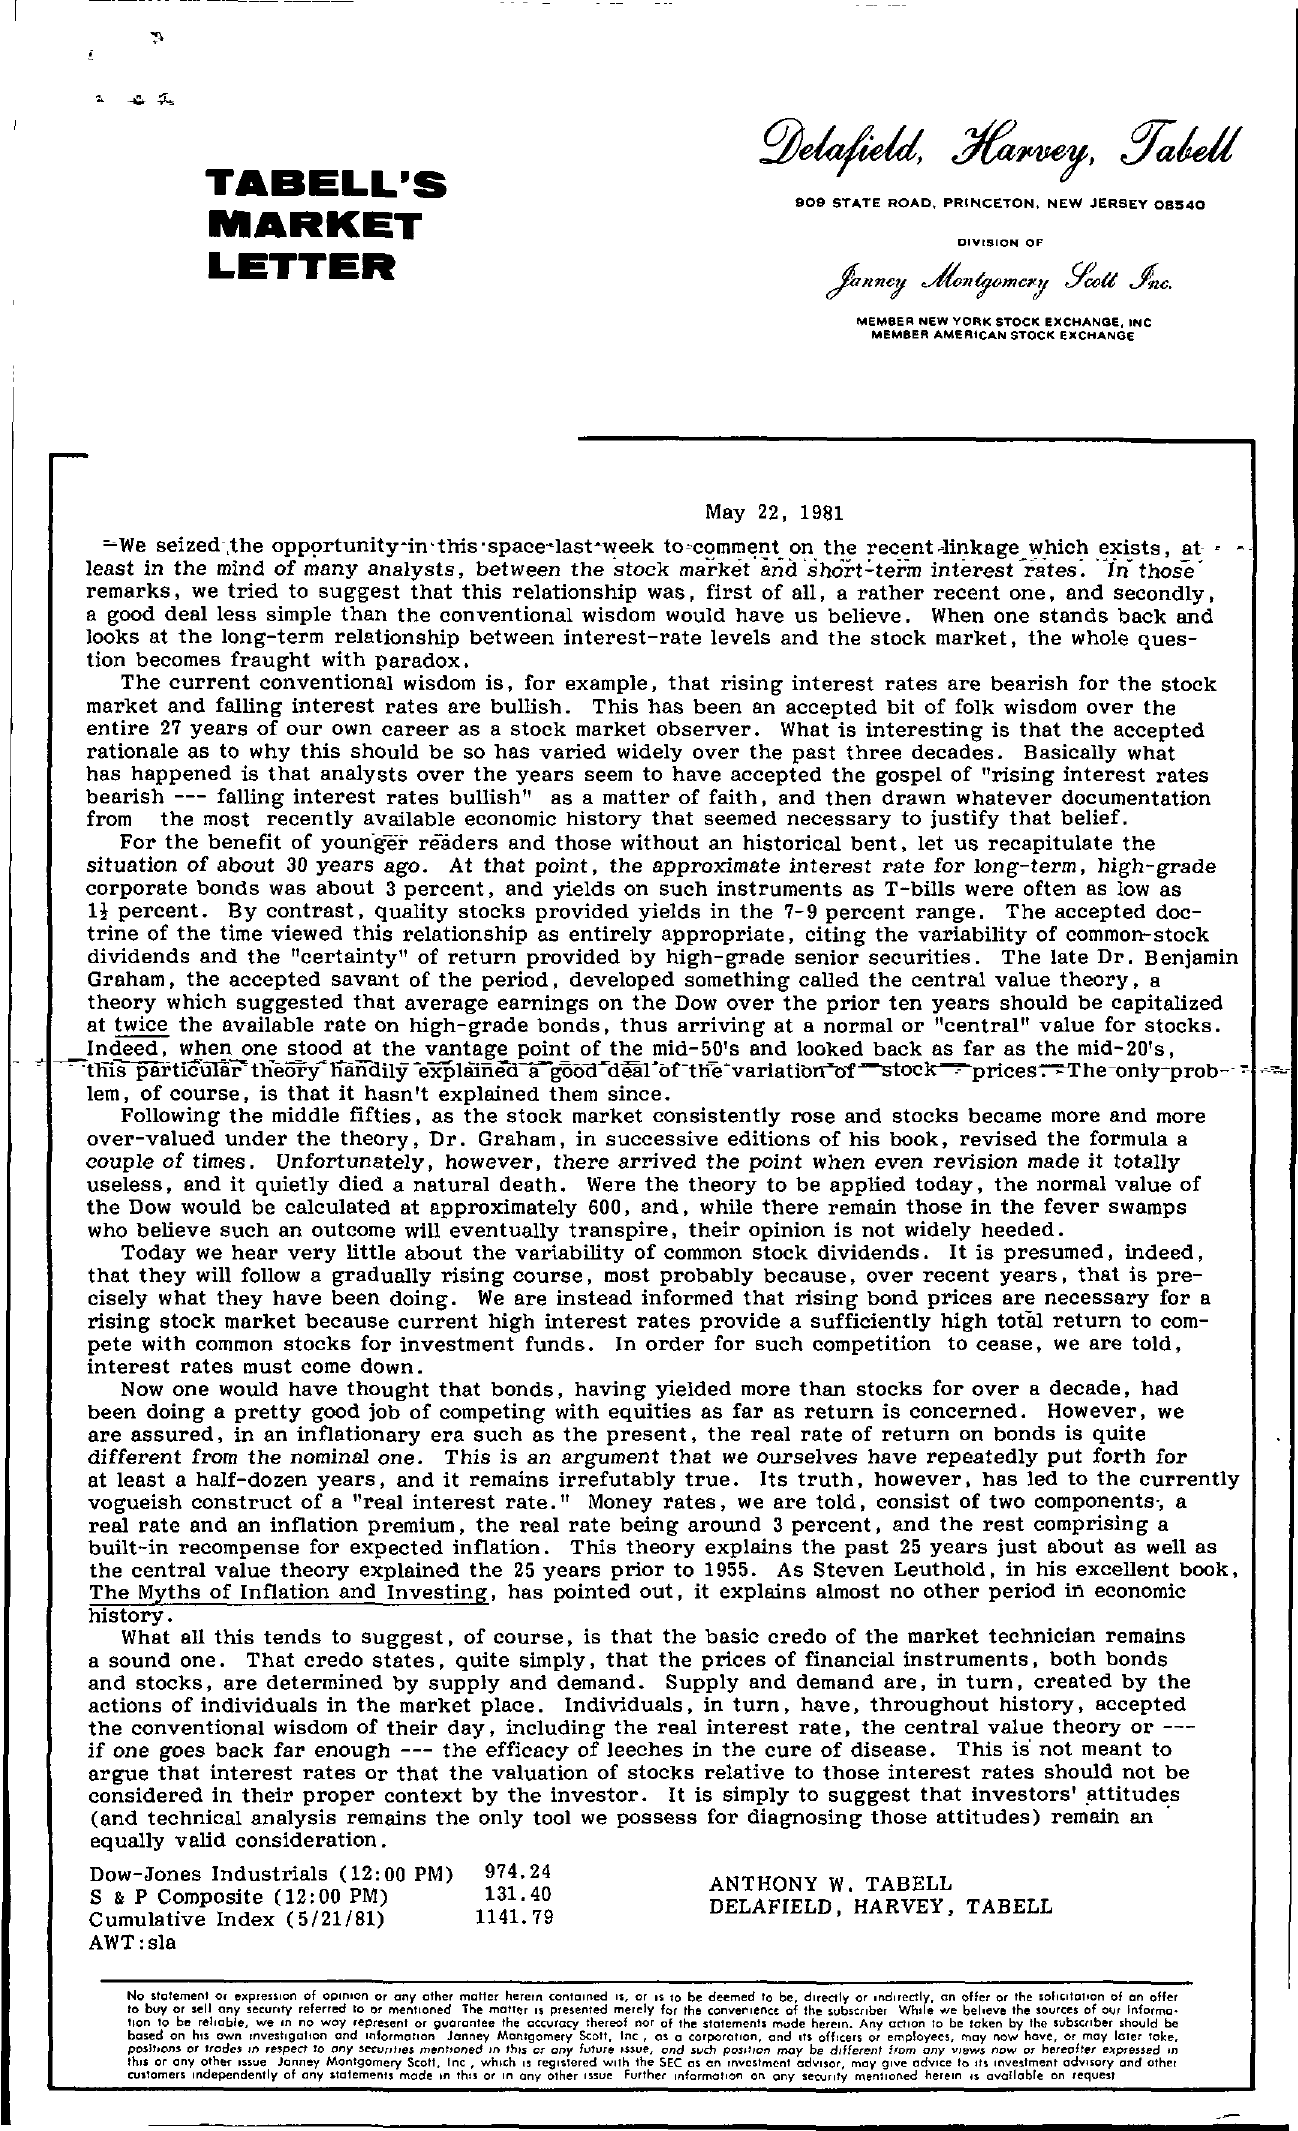 Tabell's Market Letter - May 22, 1981